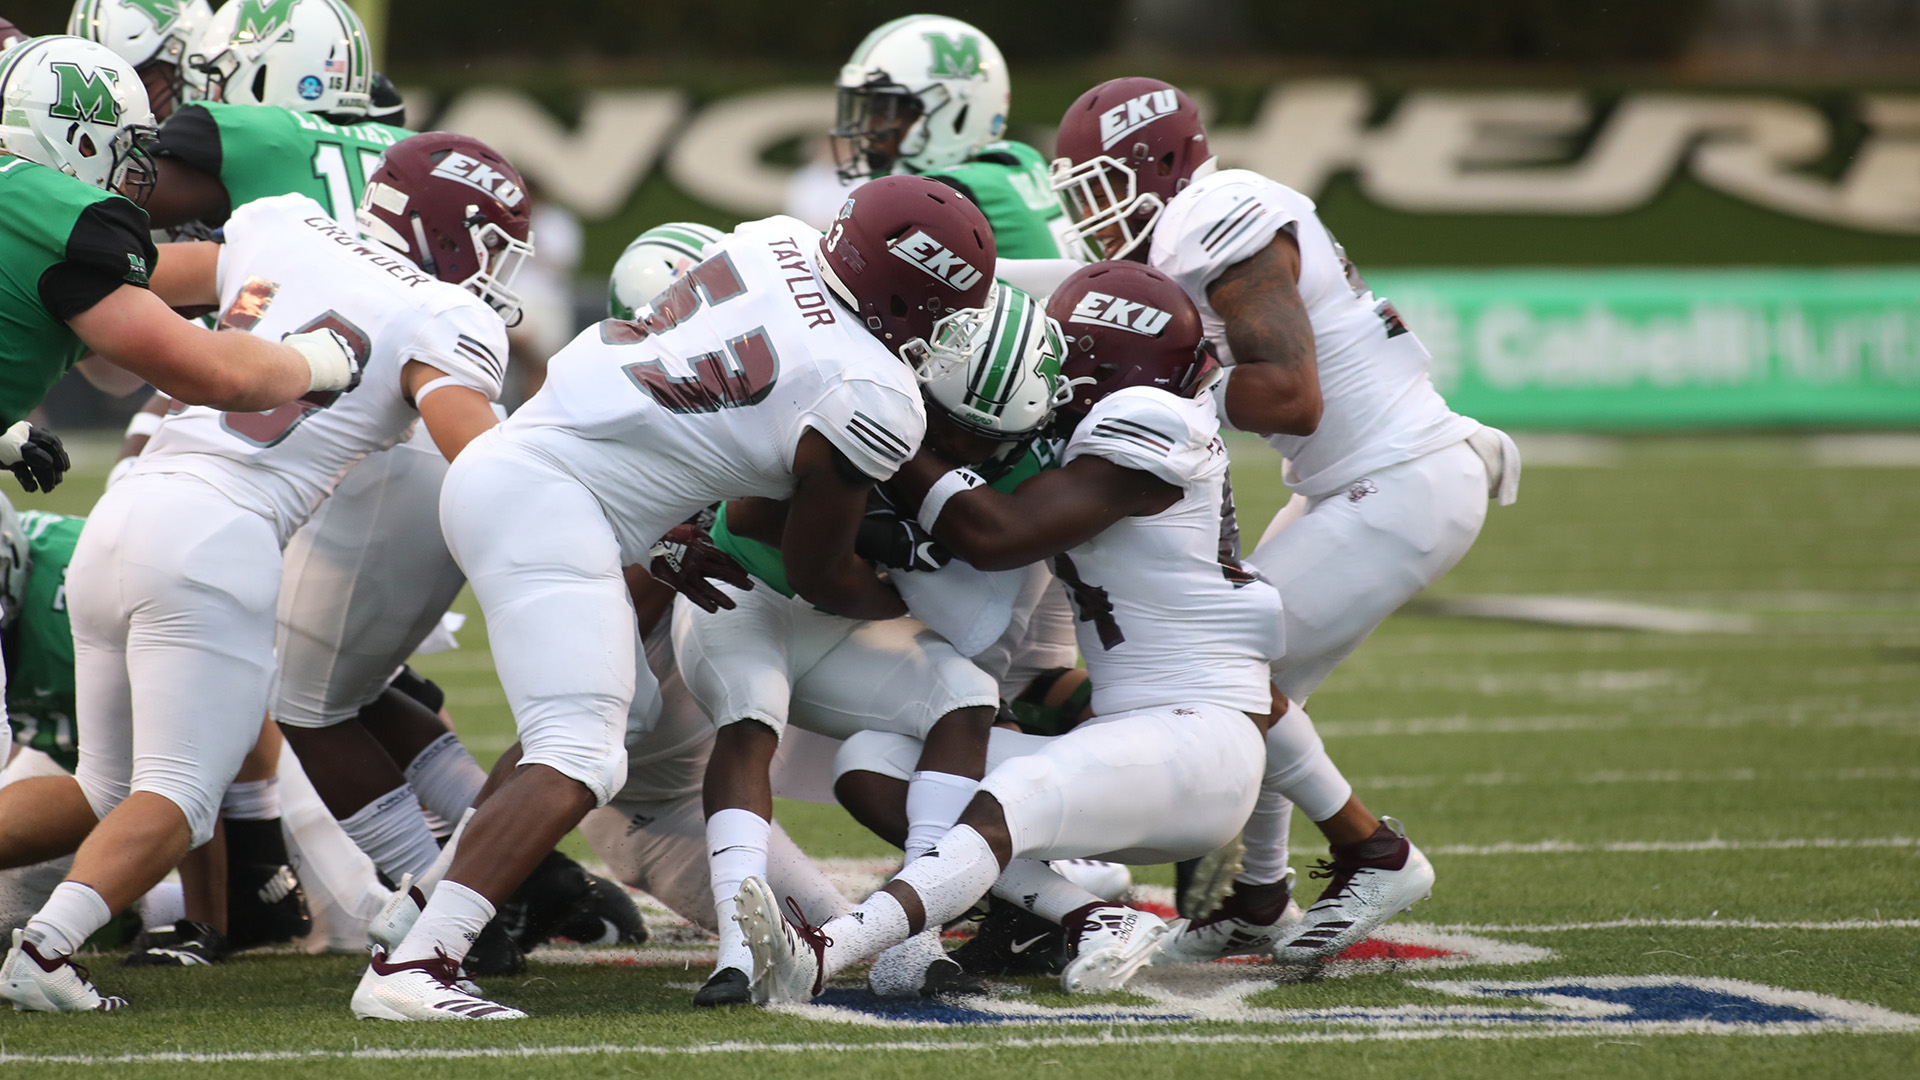 EKU Road Game At Austin Peay To Air Live On ESPN3 - Eastern Kentucky